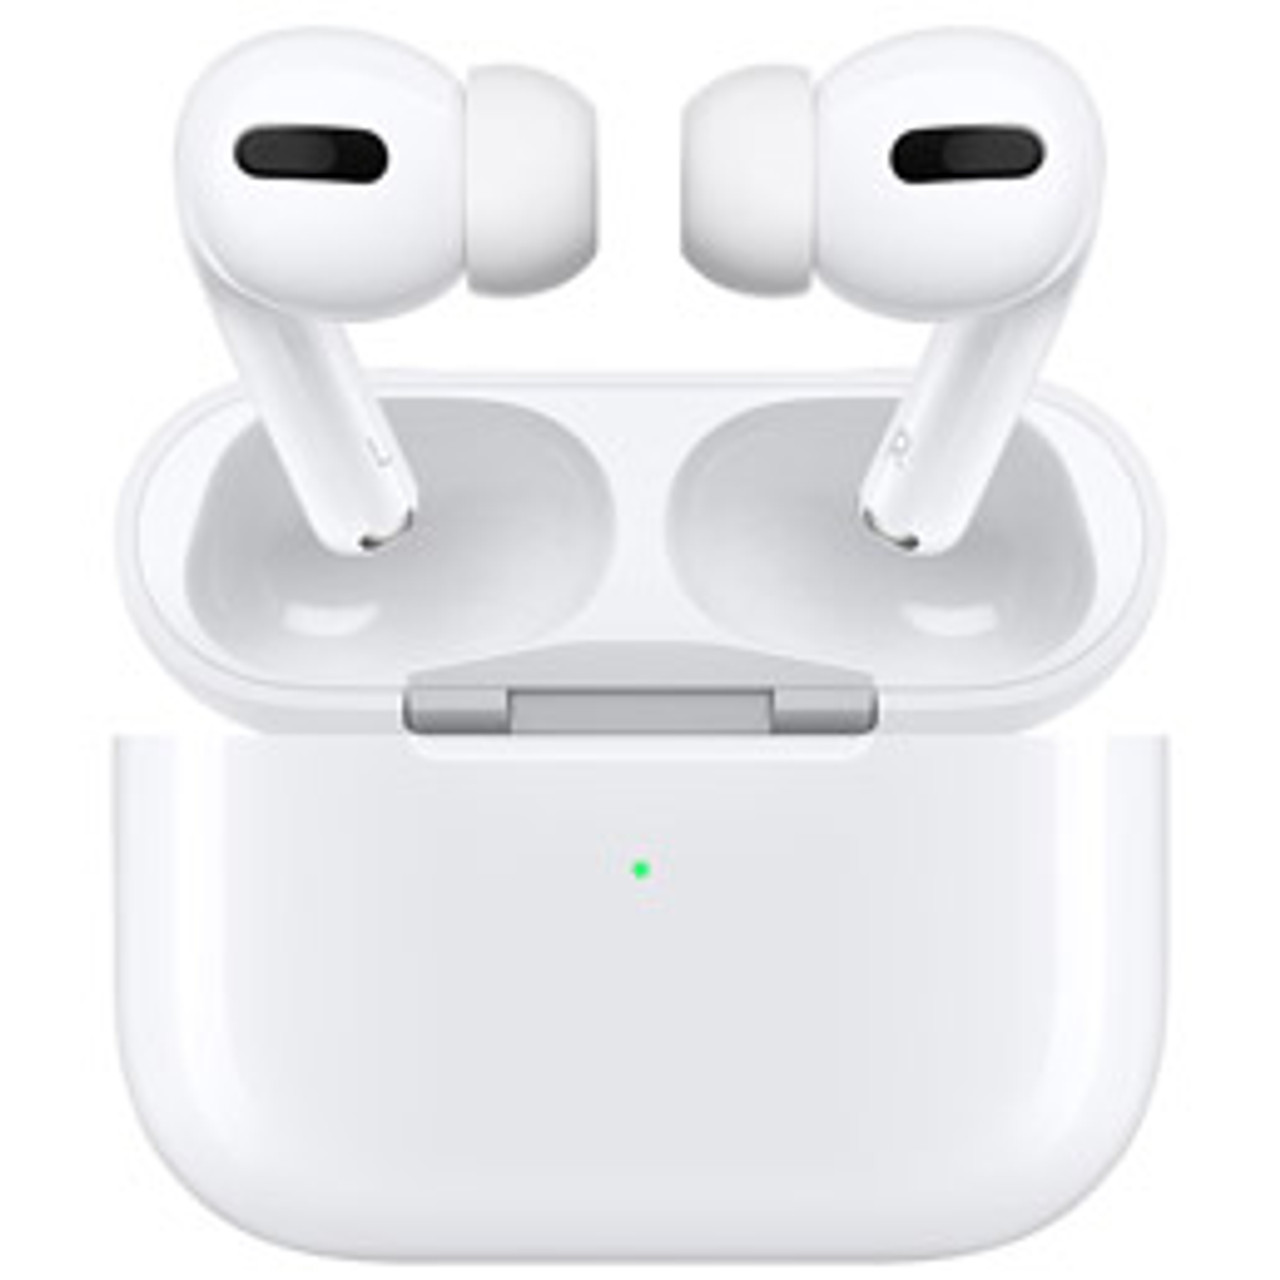 Apple Airpods Pro Skins Wraps And Decals By Phantomskinz